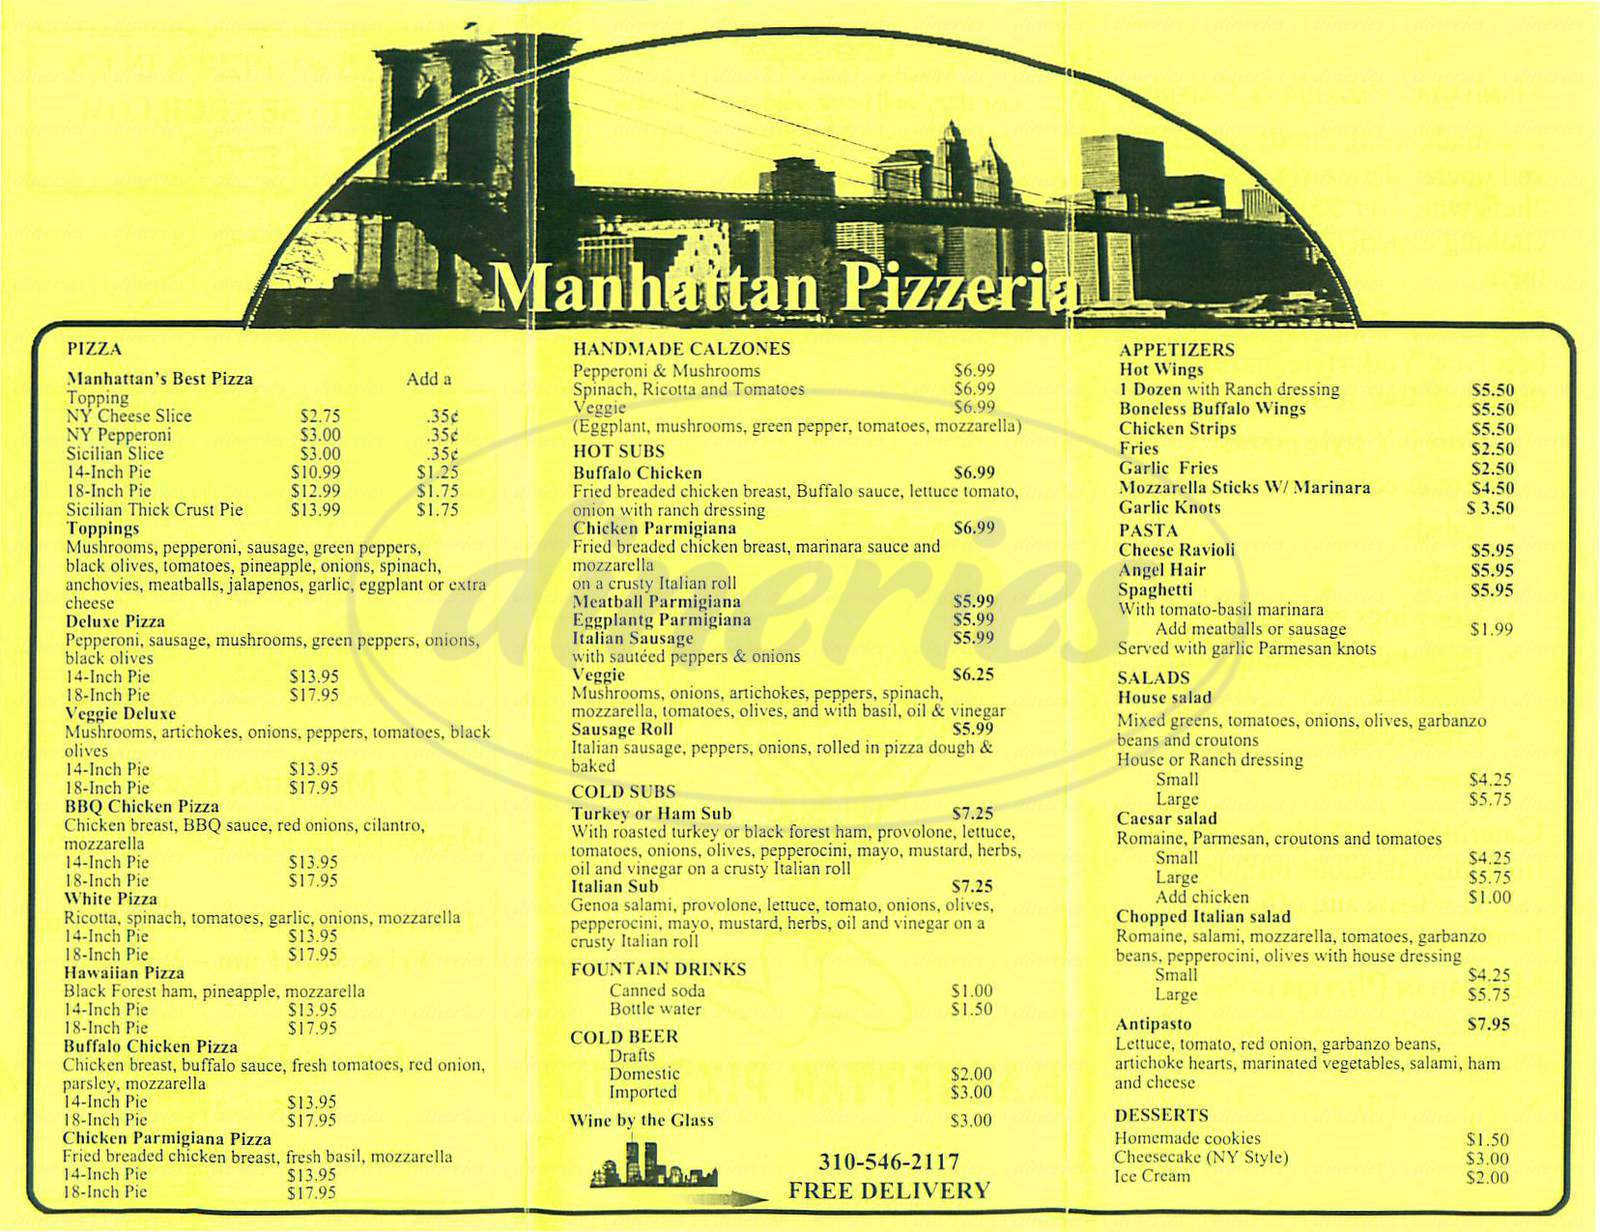 Big menu for Manhattan Pizzeria, Manhattan Beach